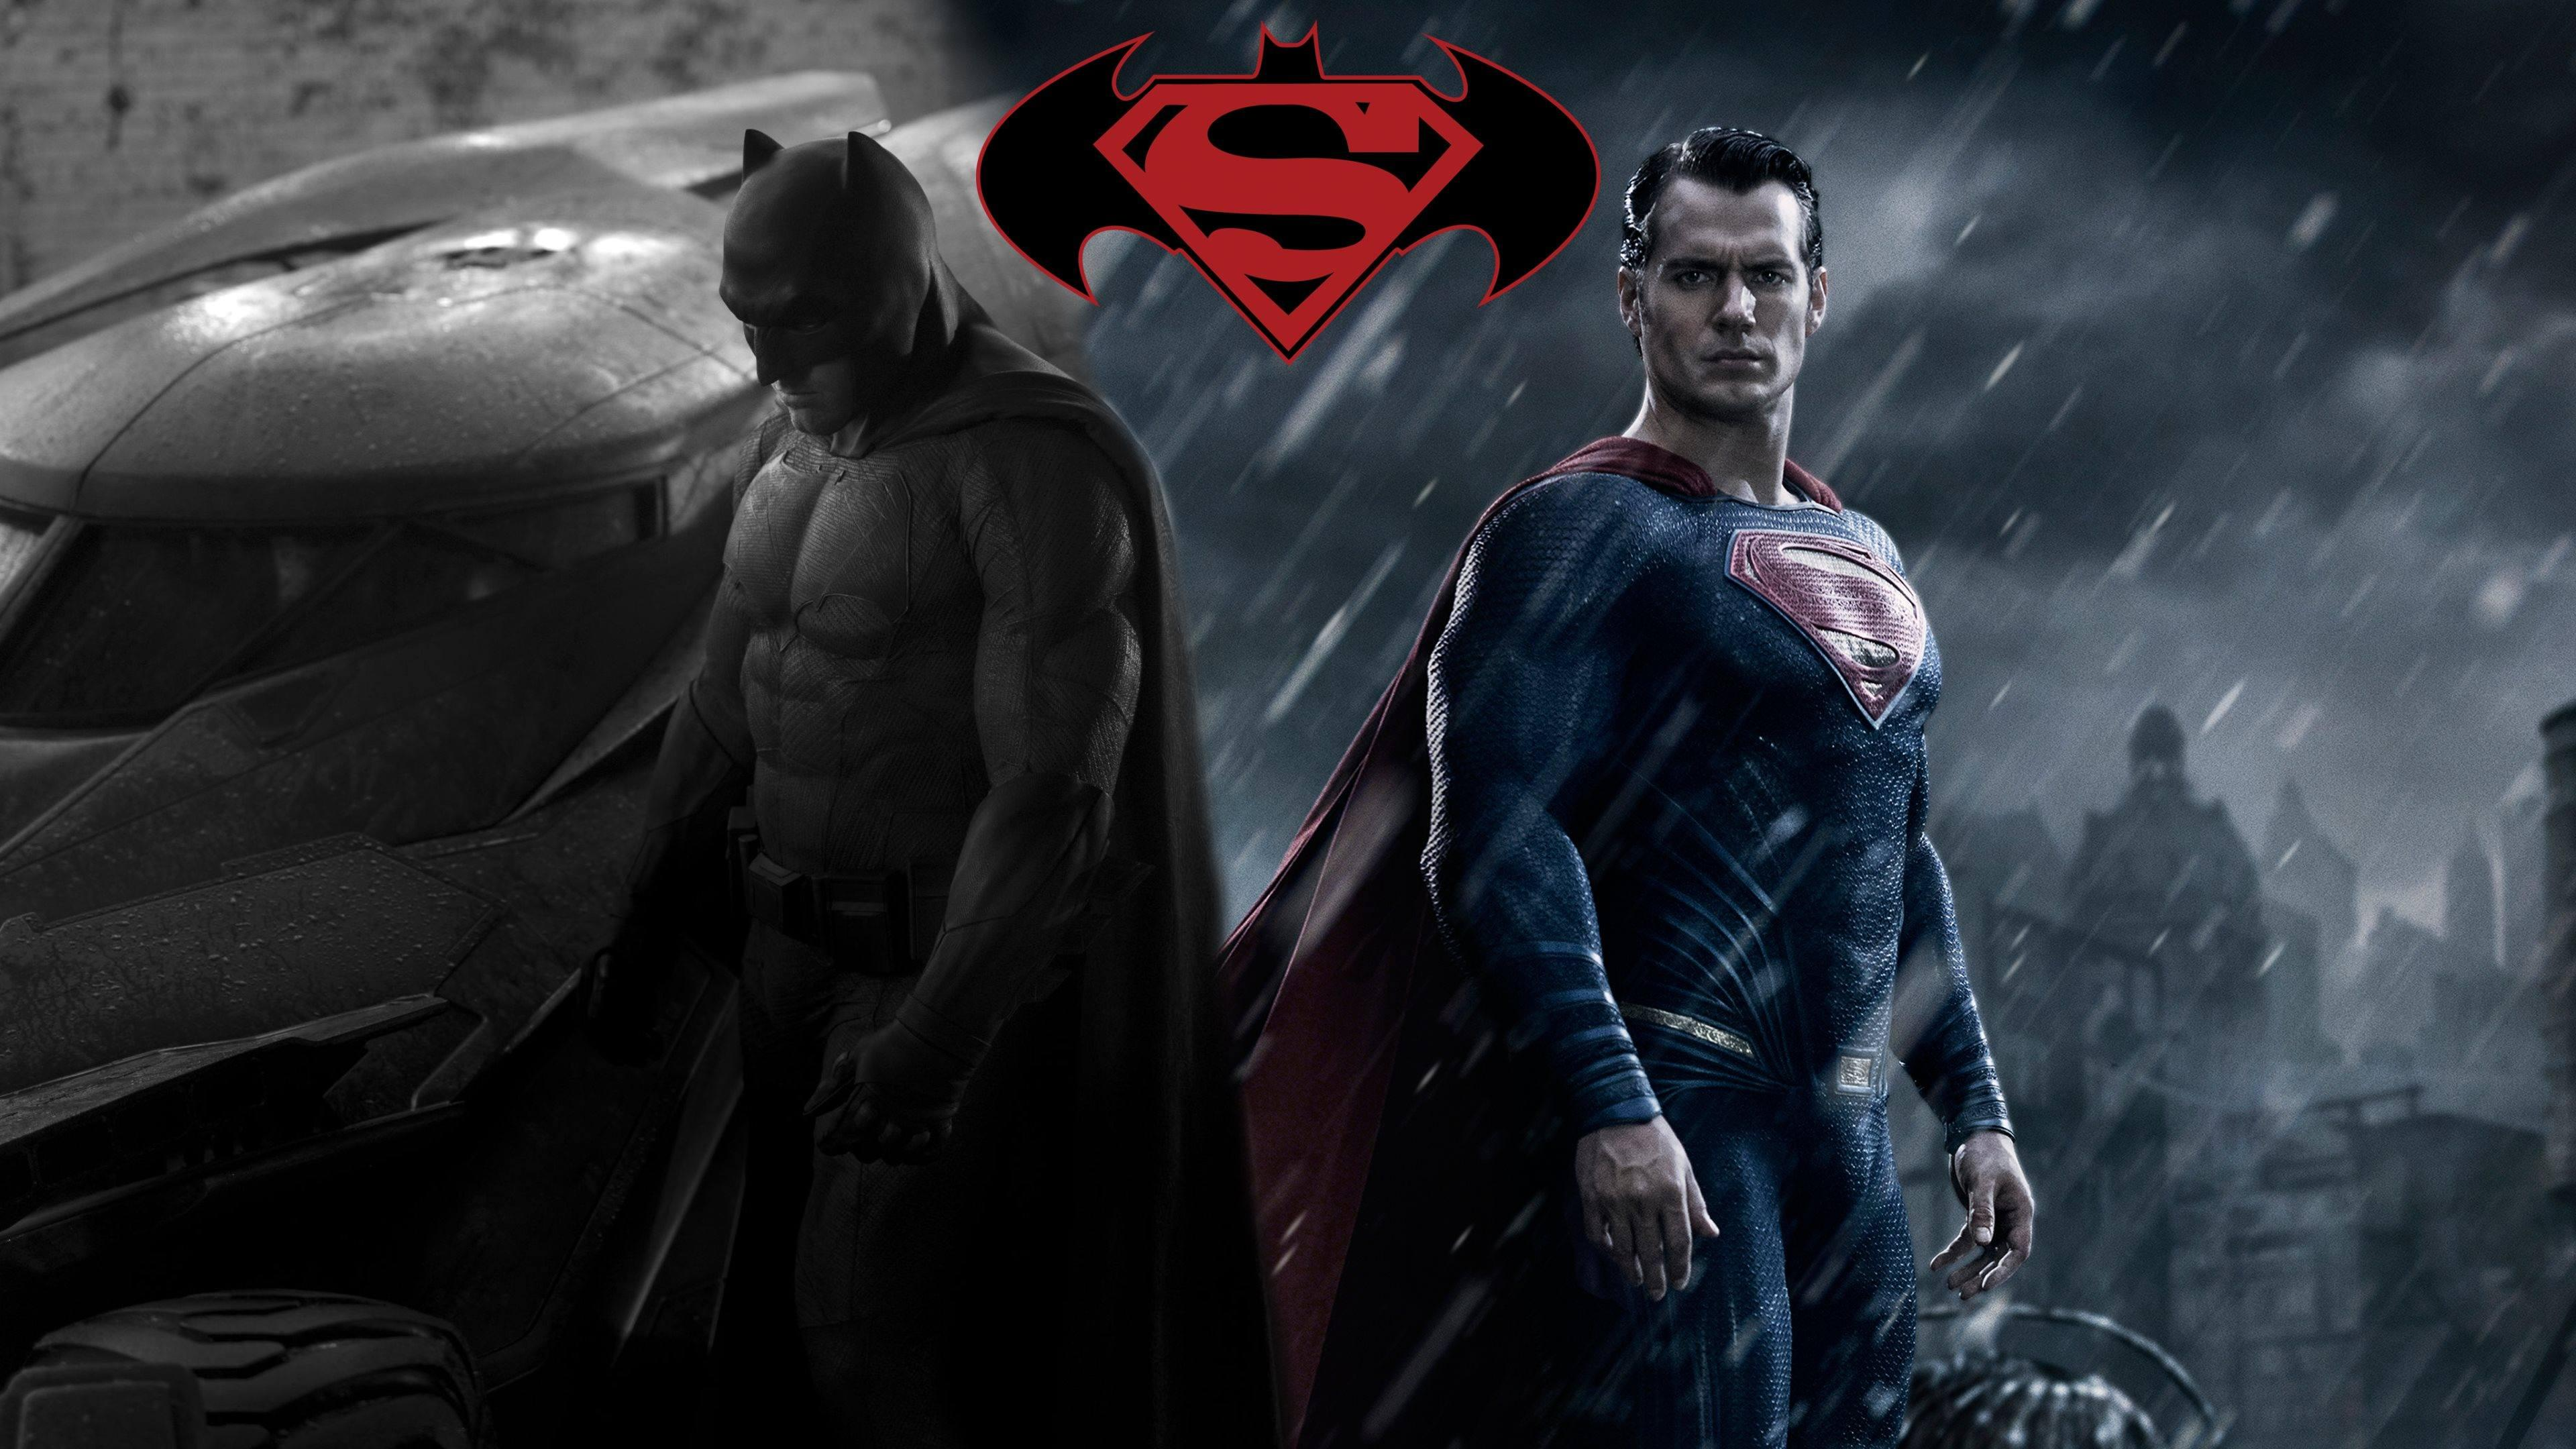 Batman Vs Superman Art Ultra Hd 4k Wallpaper 3840x2160   HD Wallpapers 3840x2160